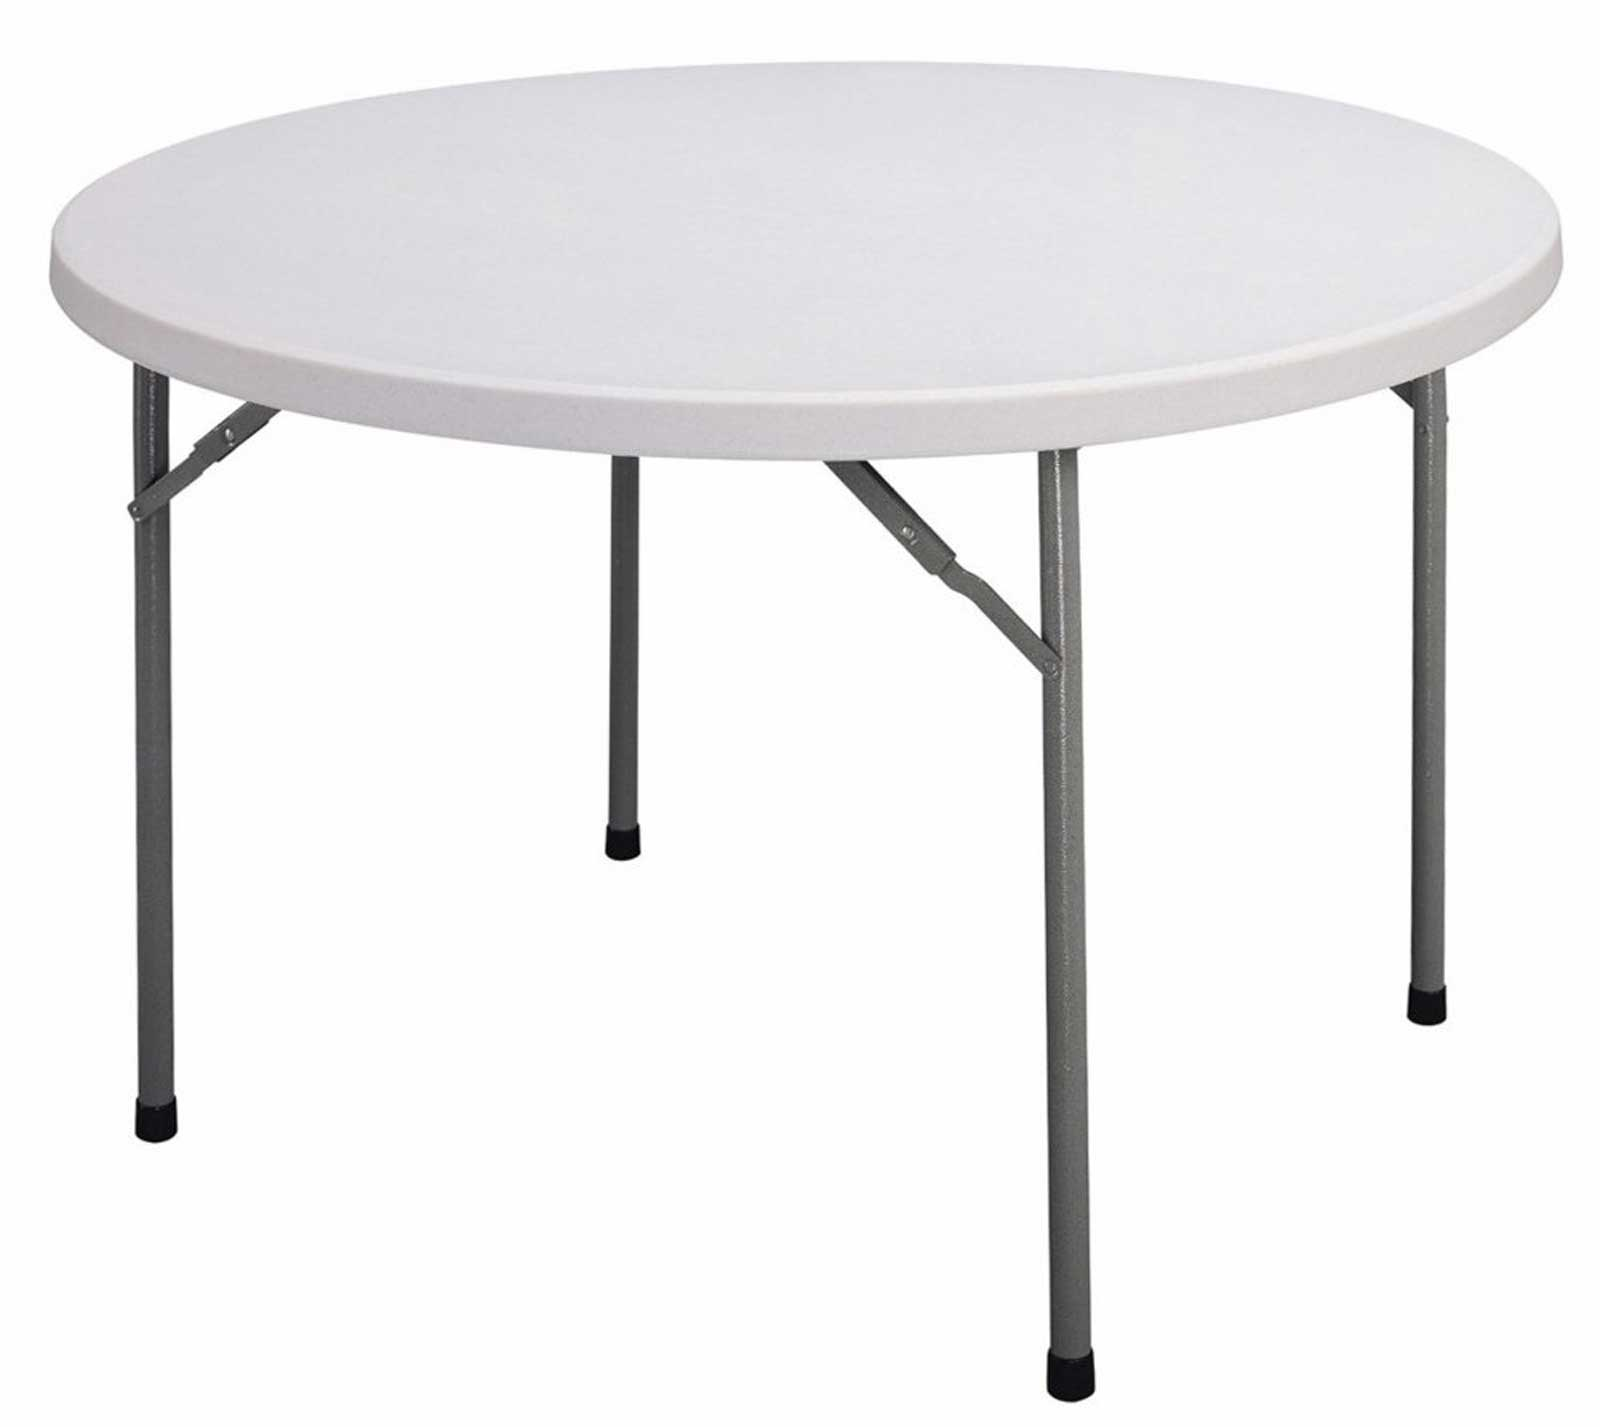 Clean Plastic Folding Table with Blow Molded Design